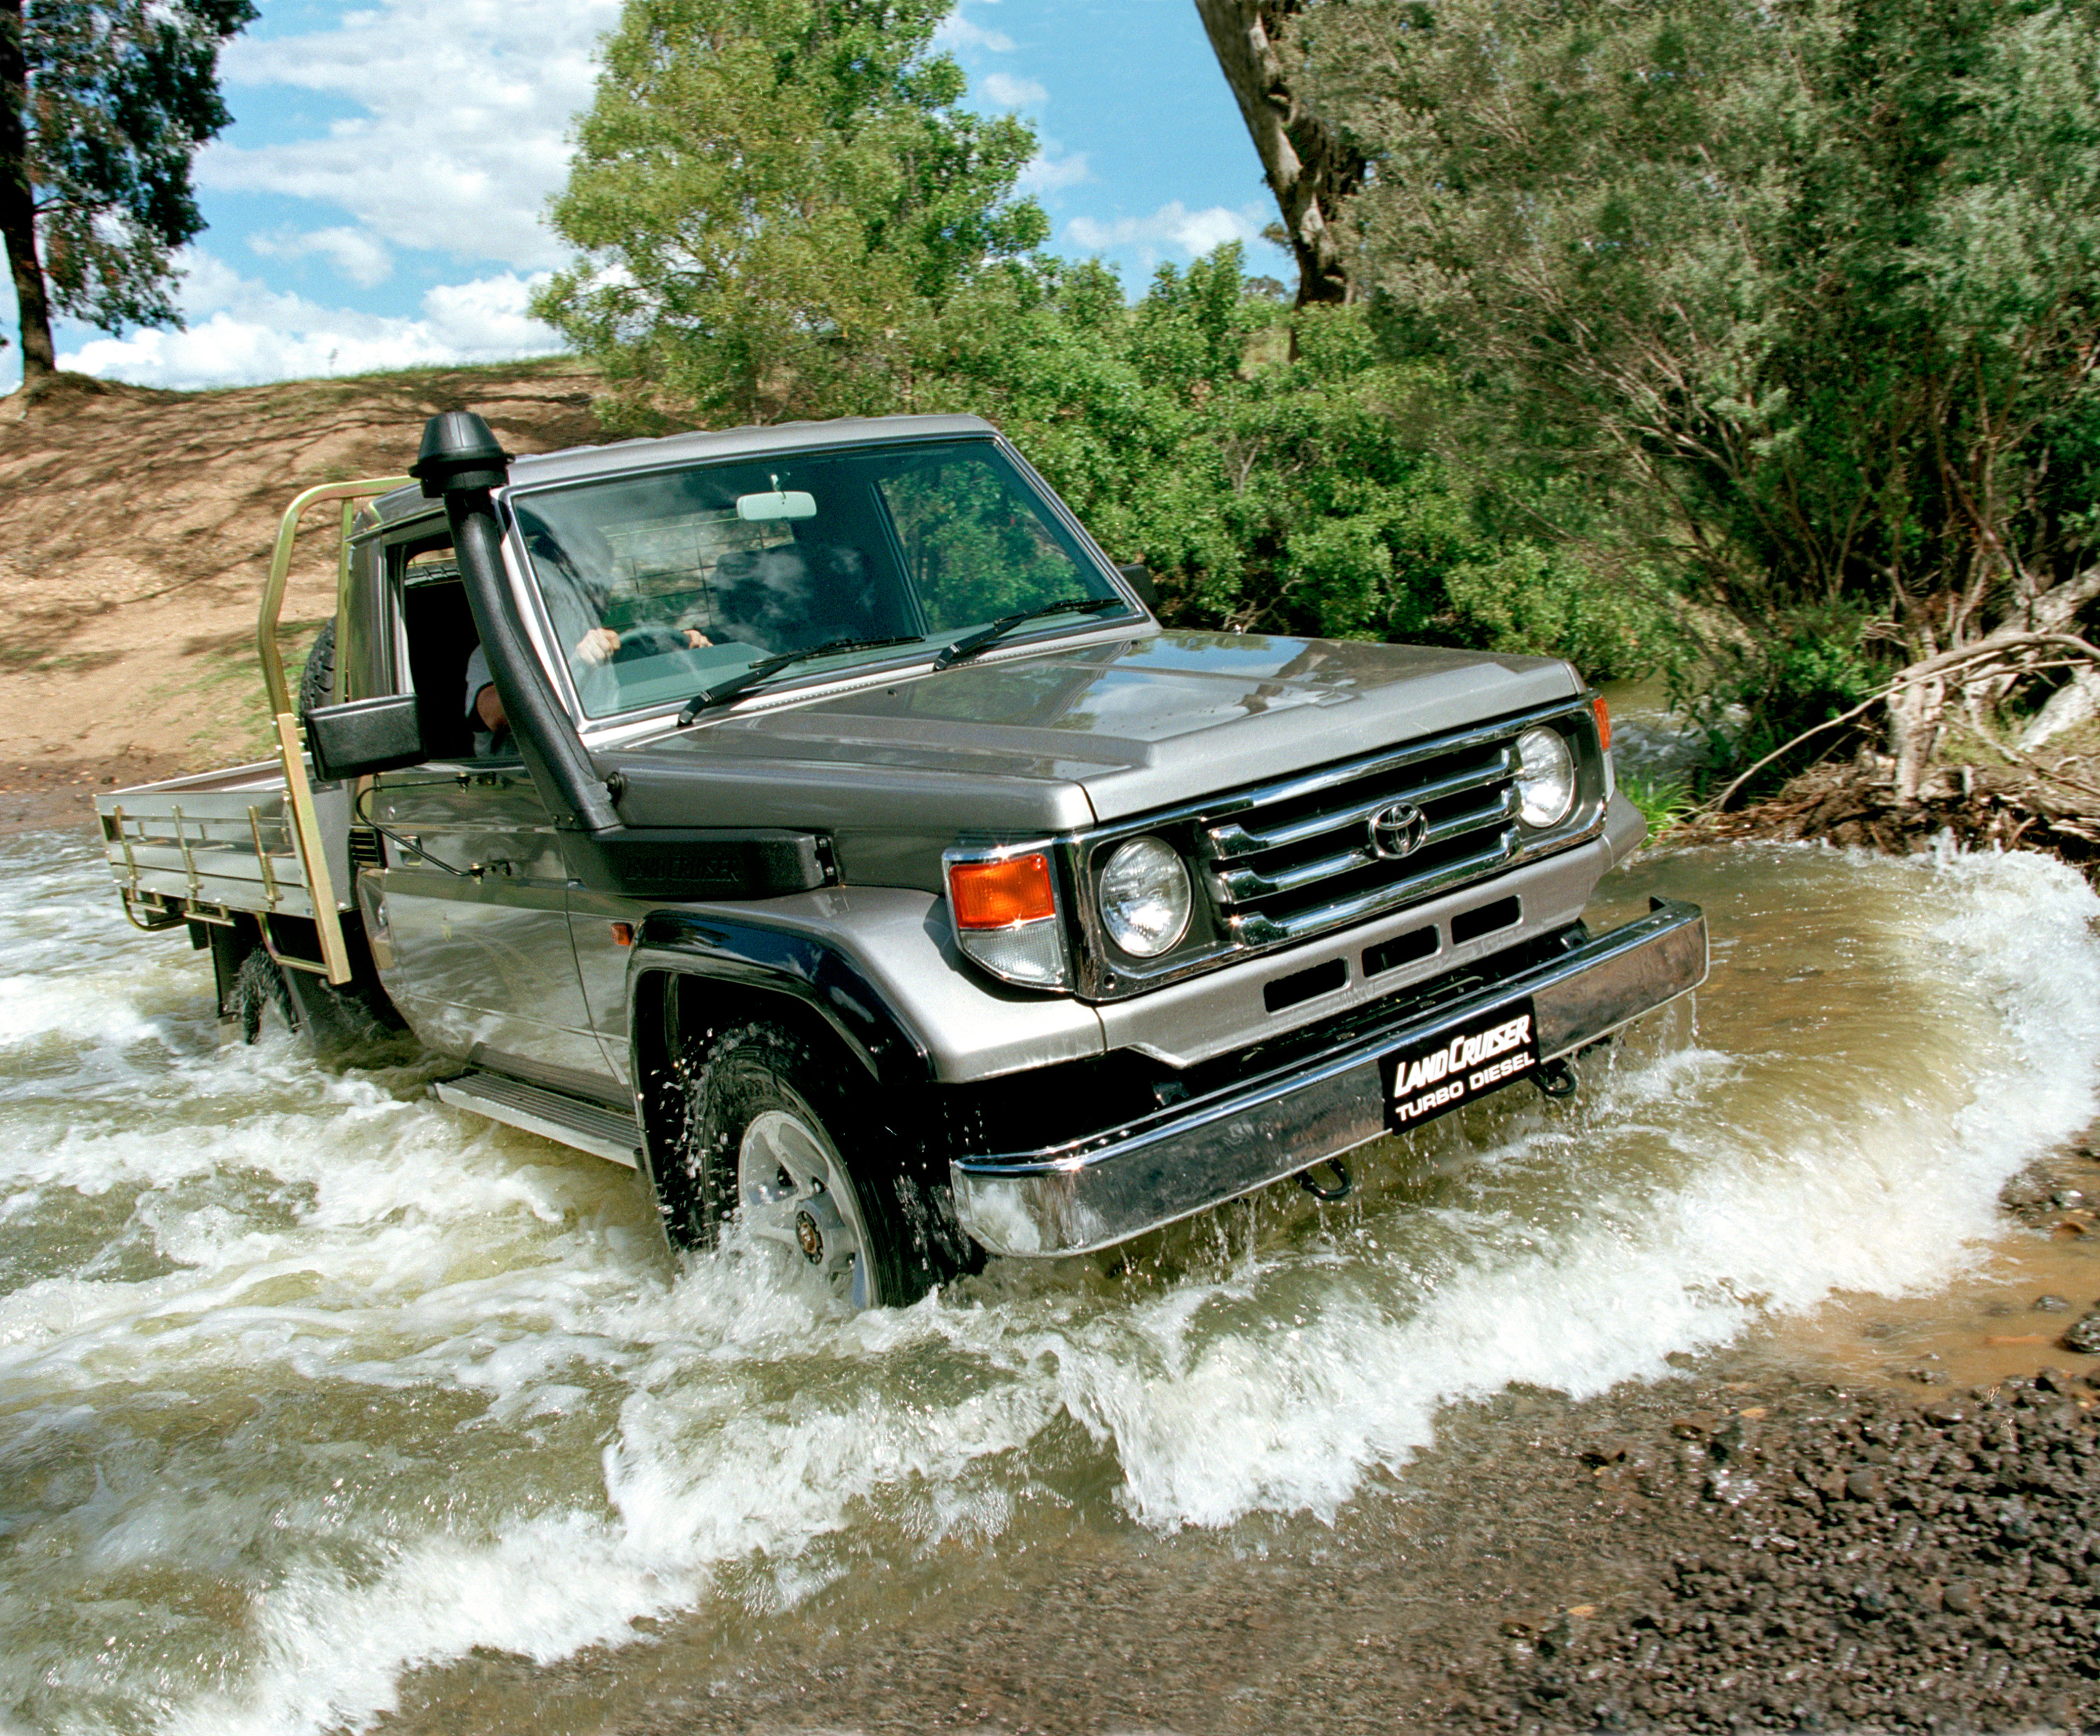 Toyota Land Cruiser 70 Set To Be 5 Star Ancap Rated Paul Tan Image 2015 383181